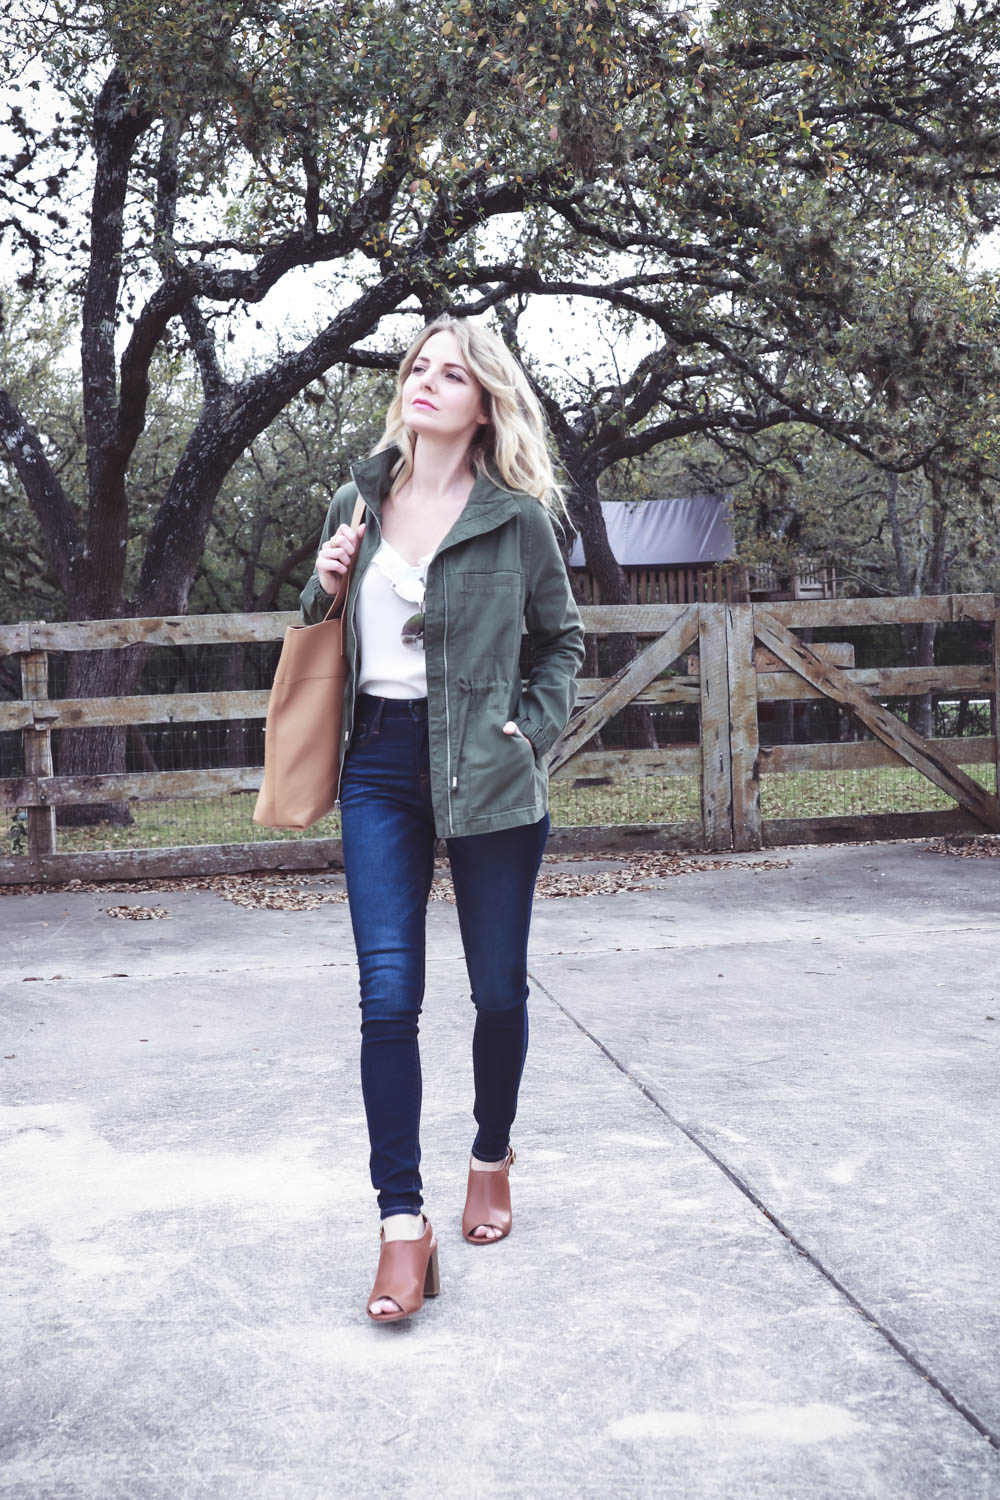 spring outfit ideas and mini capsule wardrobe, easy and affordable spring clothing, skinny jeans, sandals, scarves, blazer, striped top and tote bag